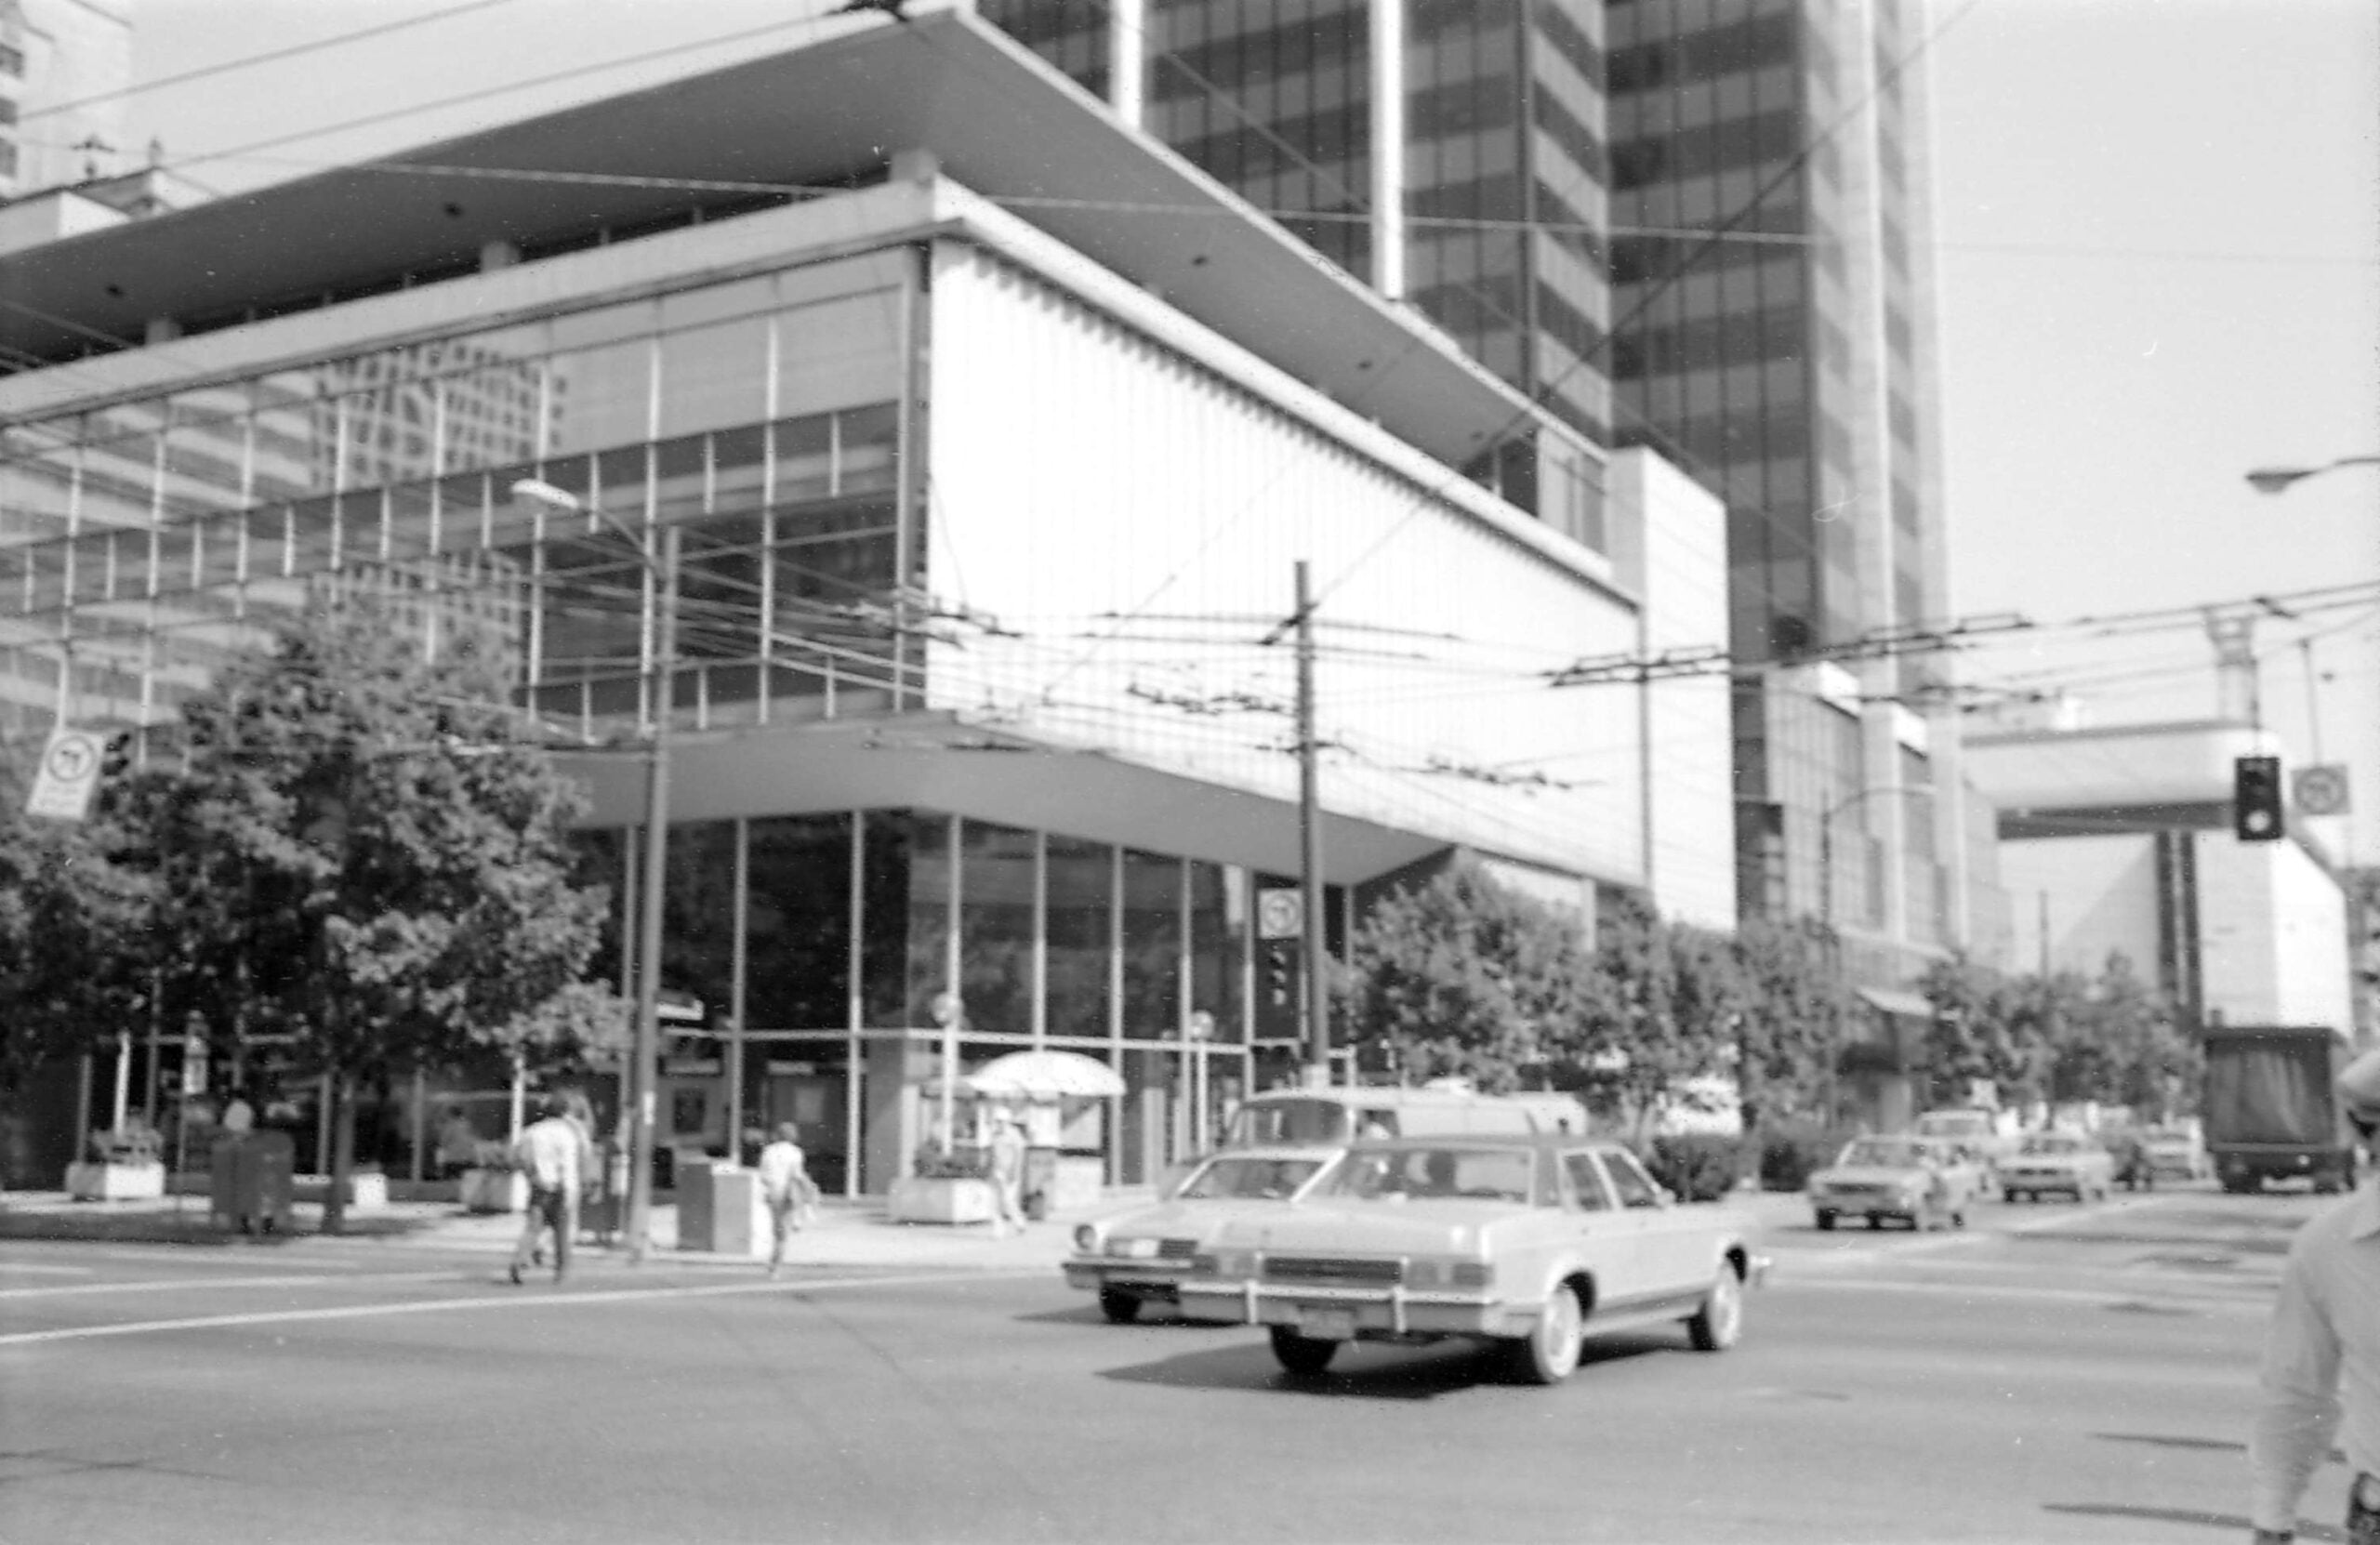 Historical Photo of Robson and Burrard Street in 1981